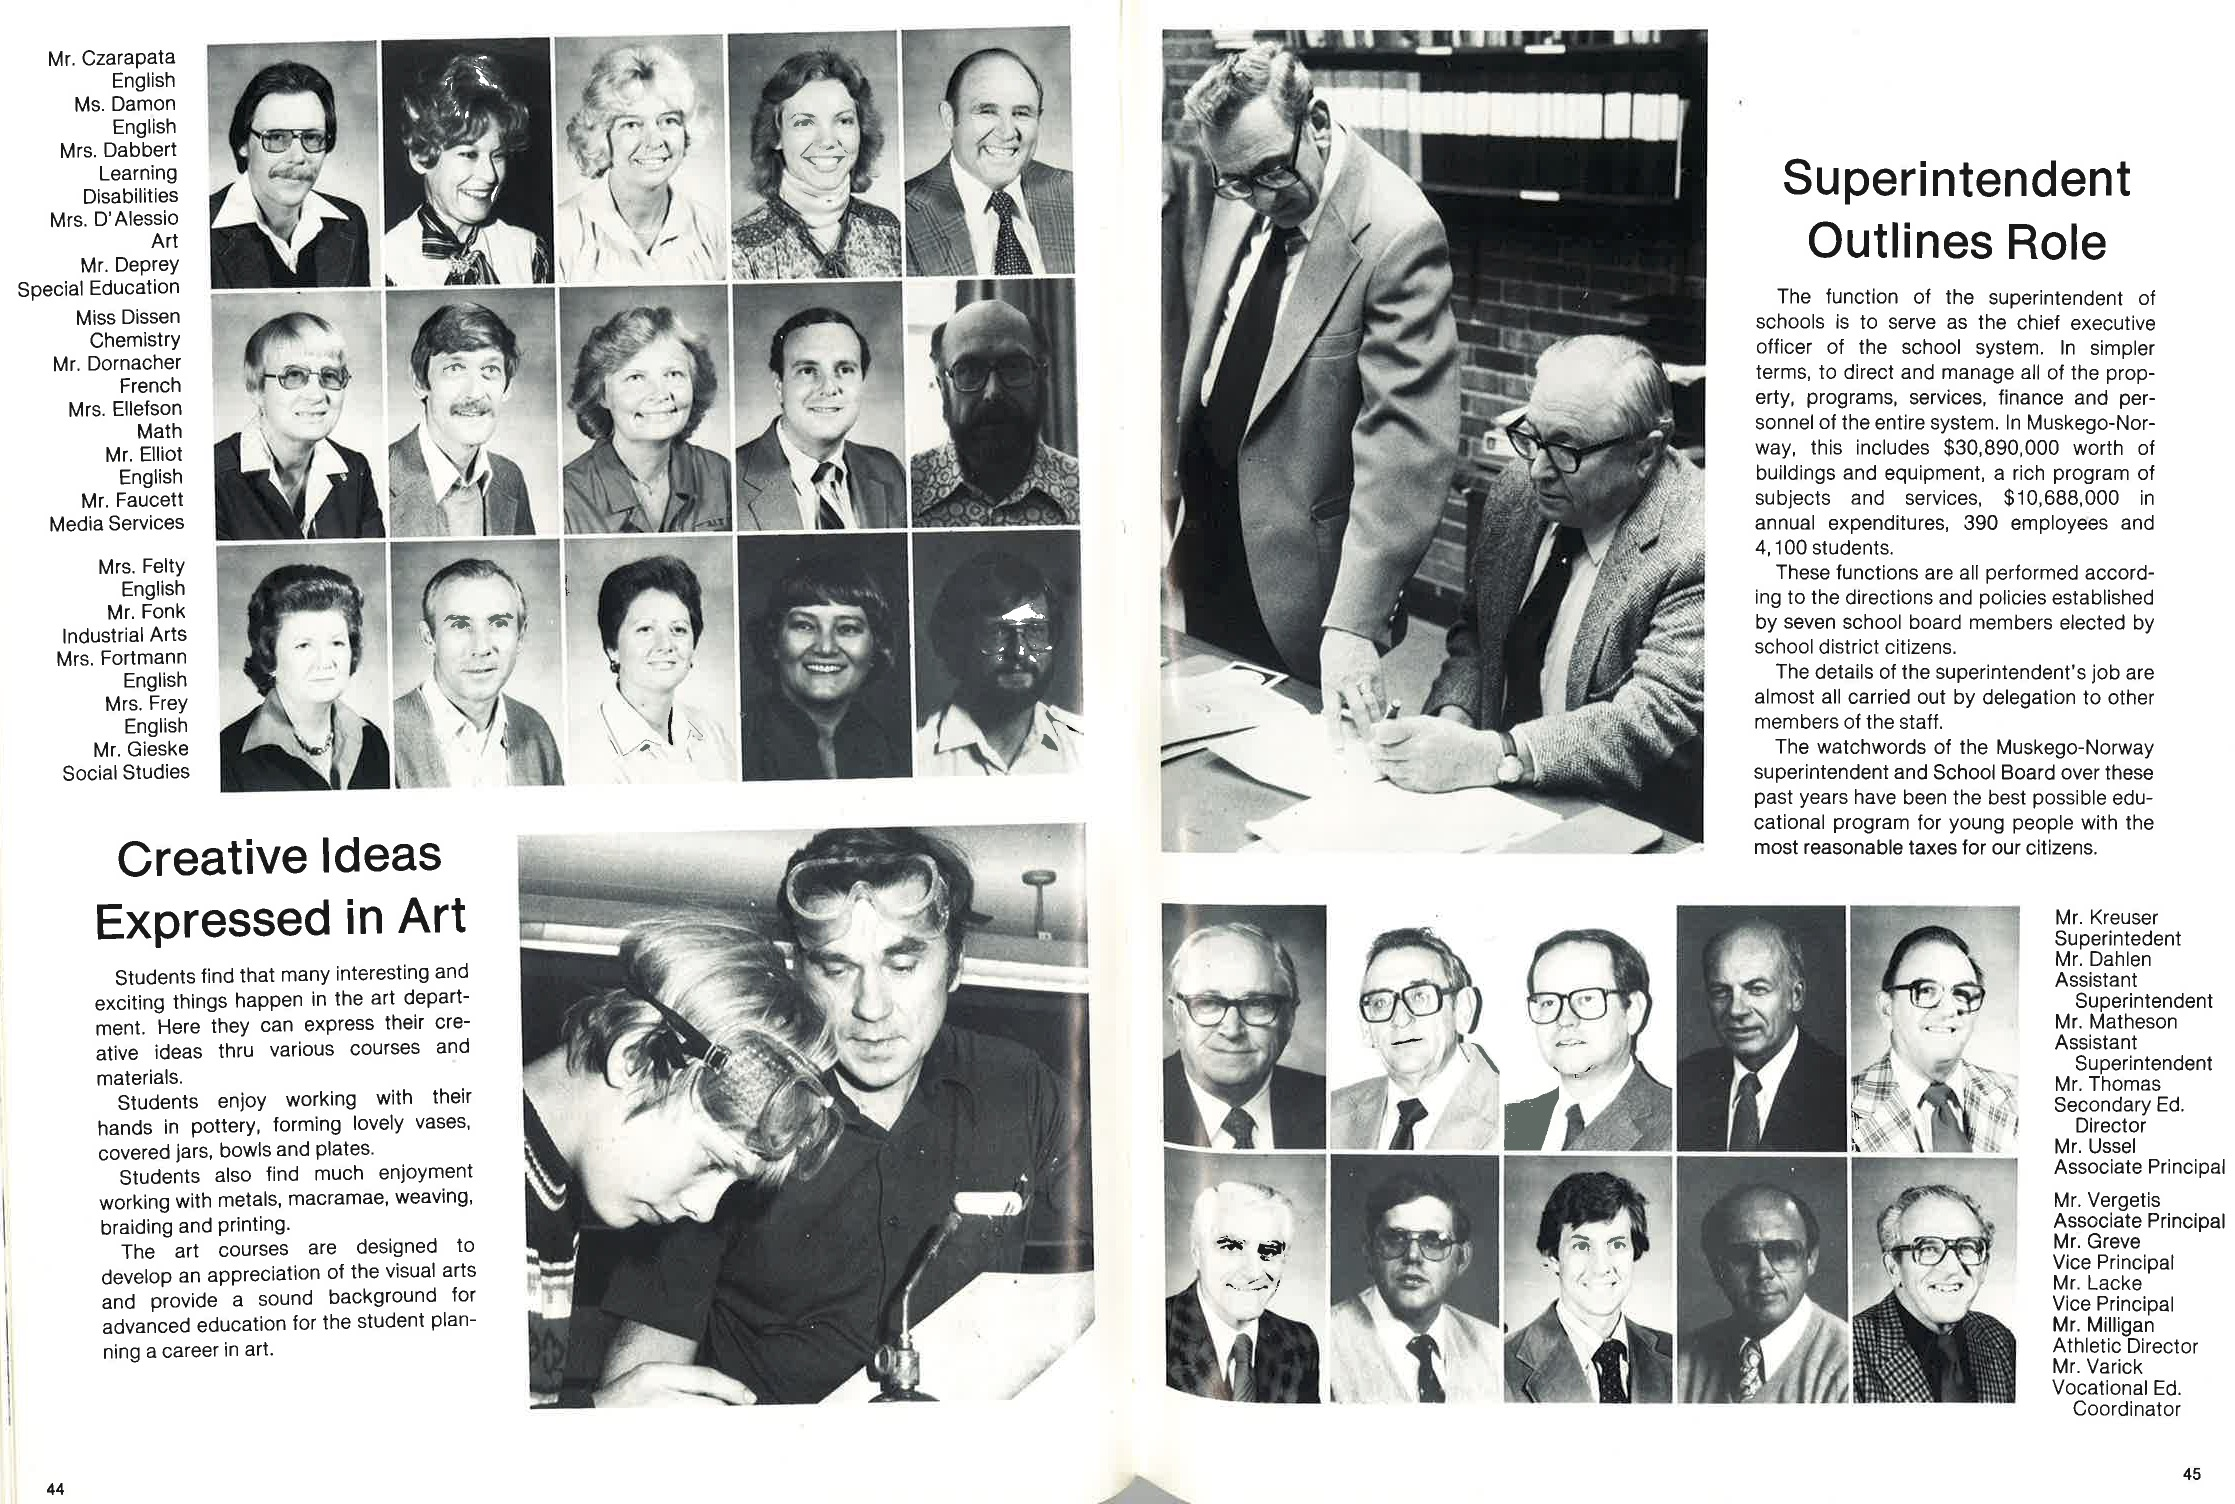 1981_Yearbook_44.jpg